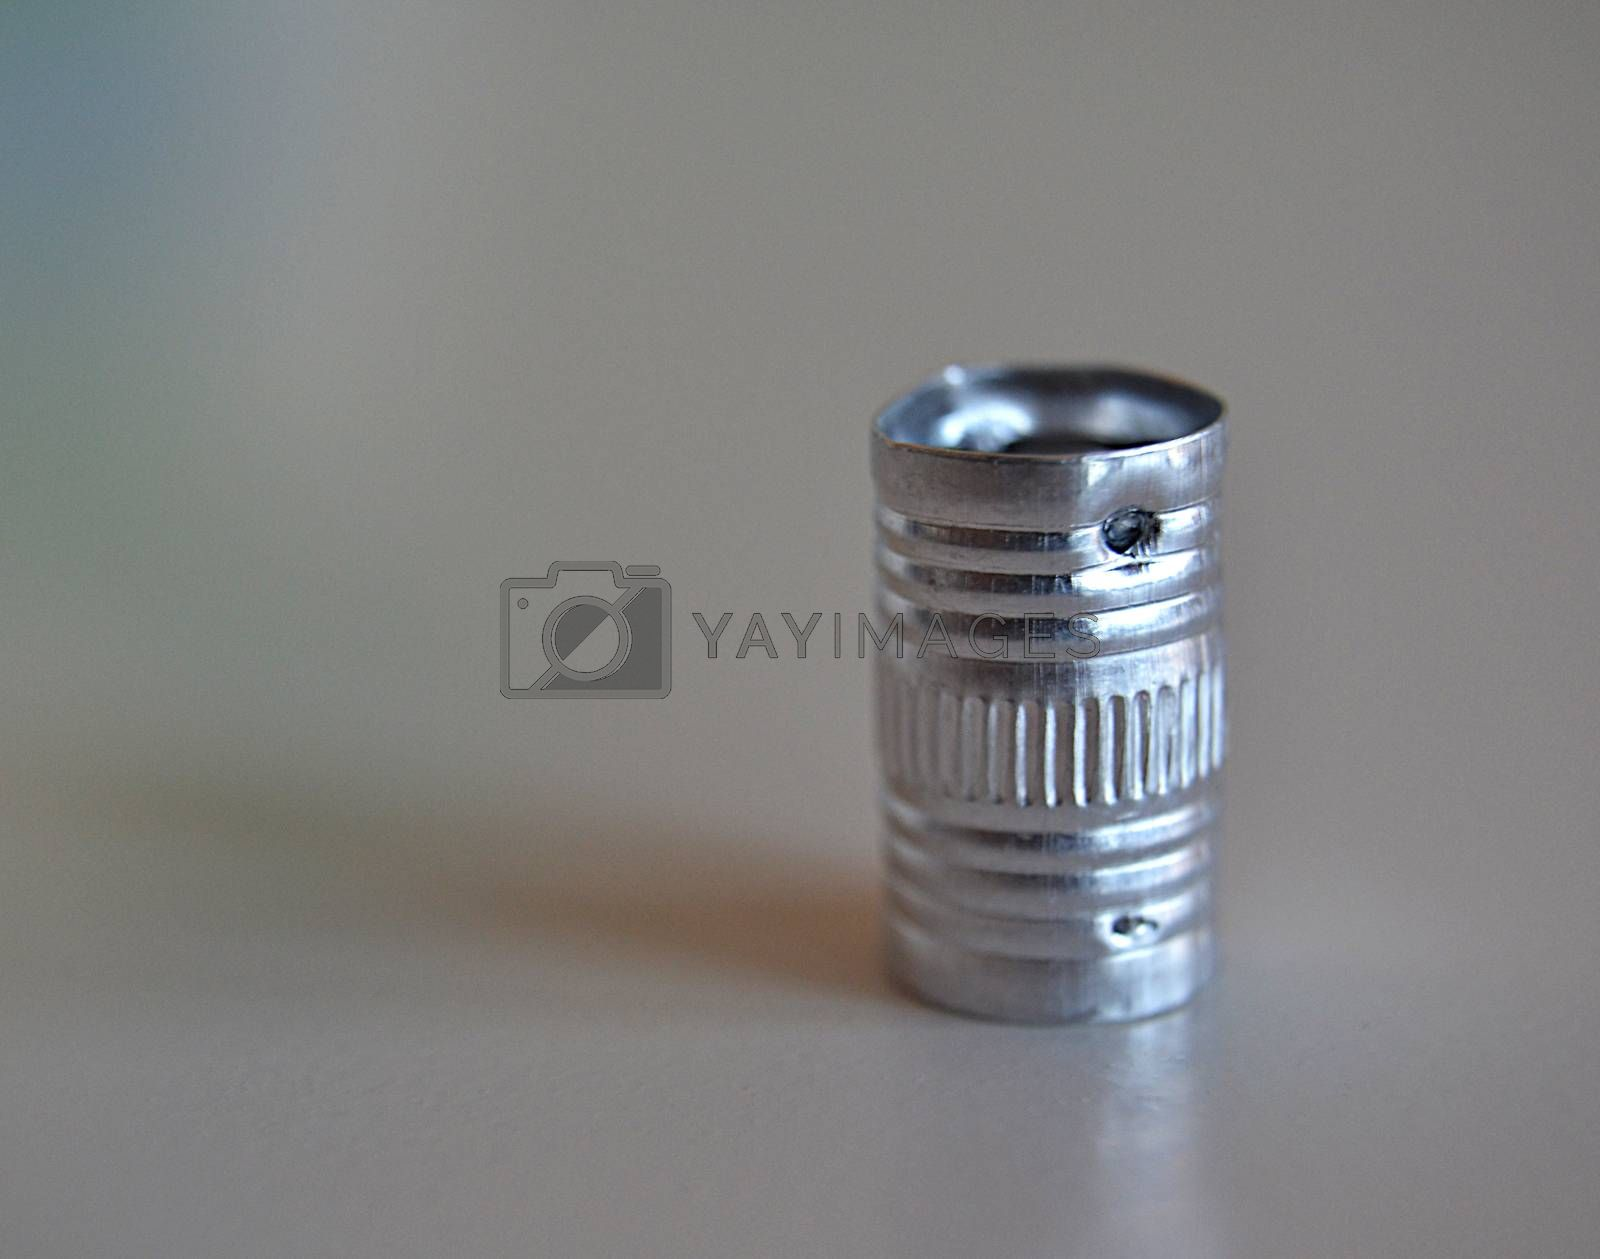 Small metal tube, glossy cylindrical and vertically positioned